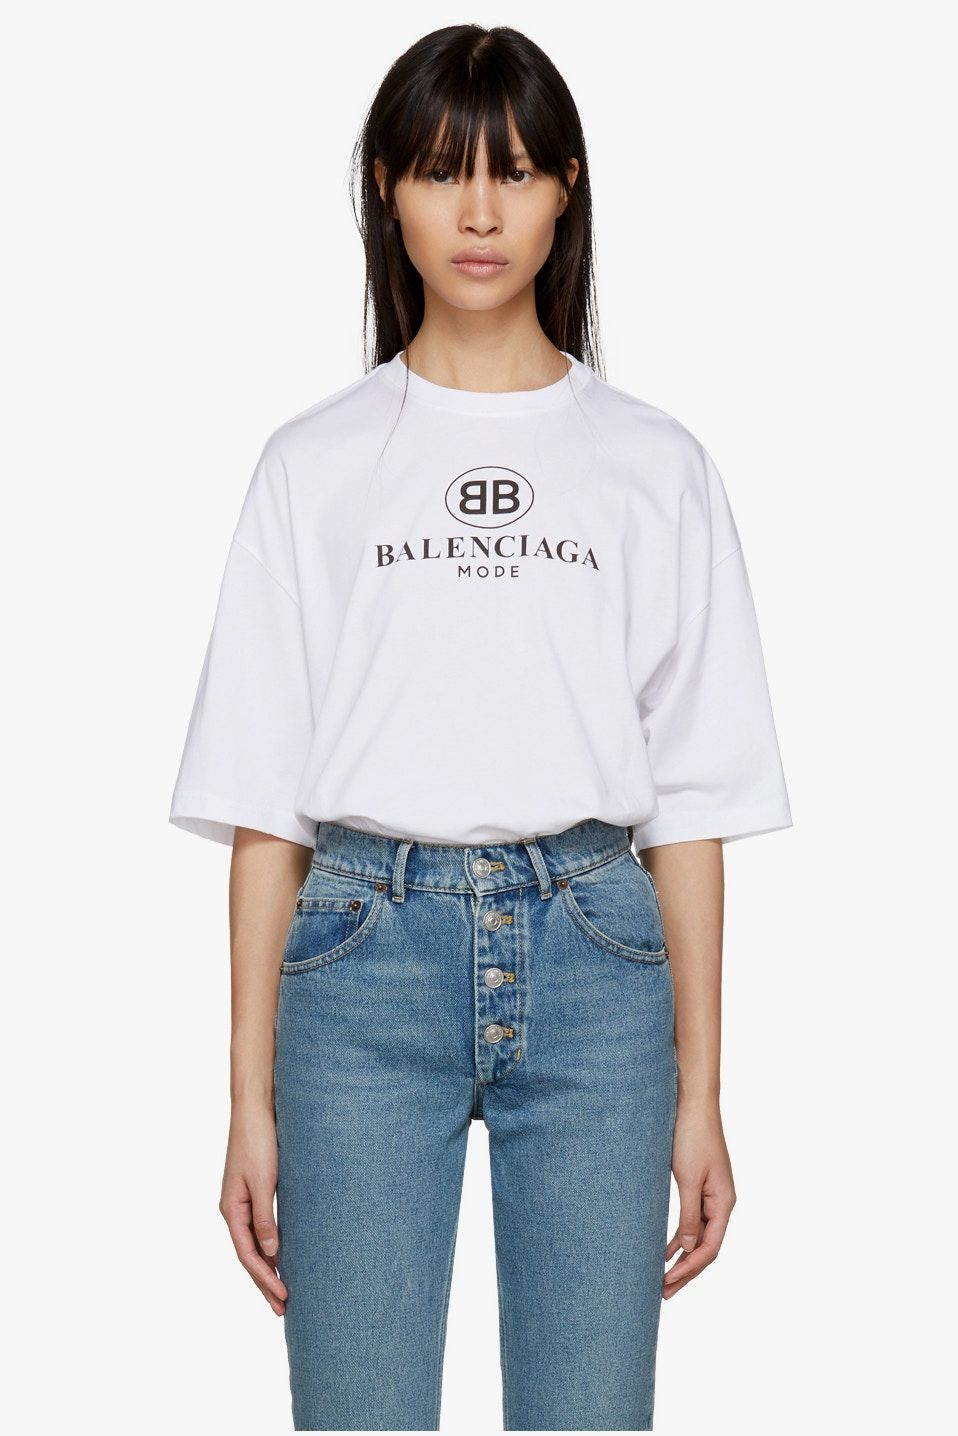 55795c14 Move Over Gucci, Balenciaga Releases Its Very Own Logo T-Shirt | 5 ...